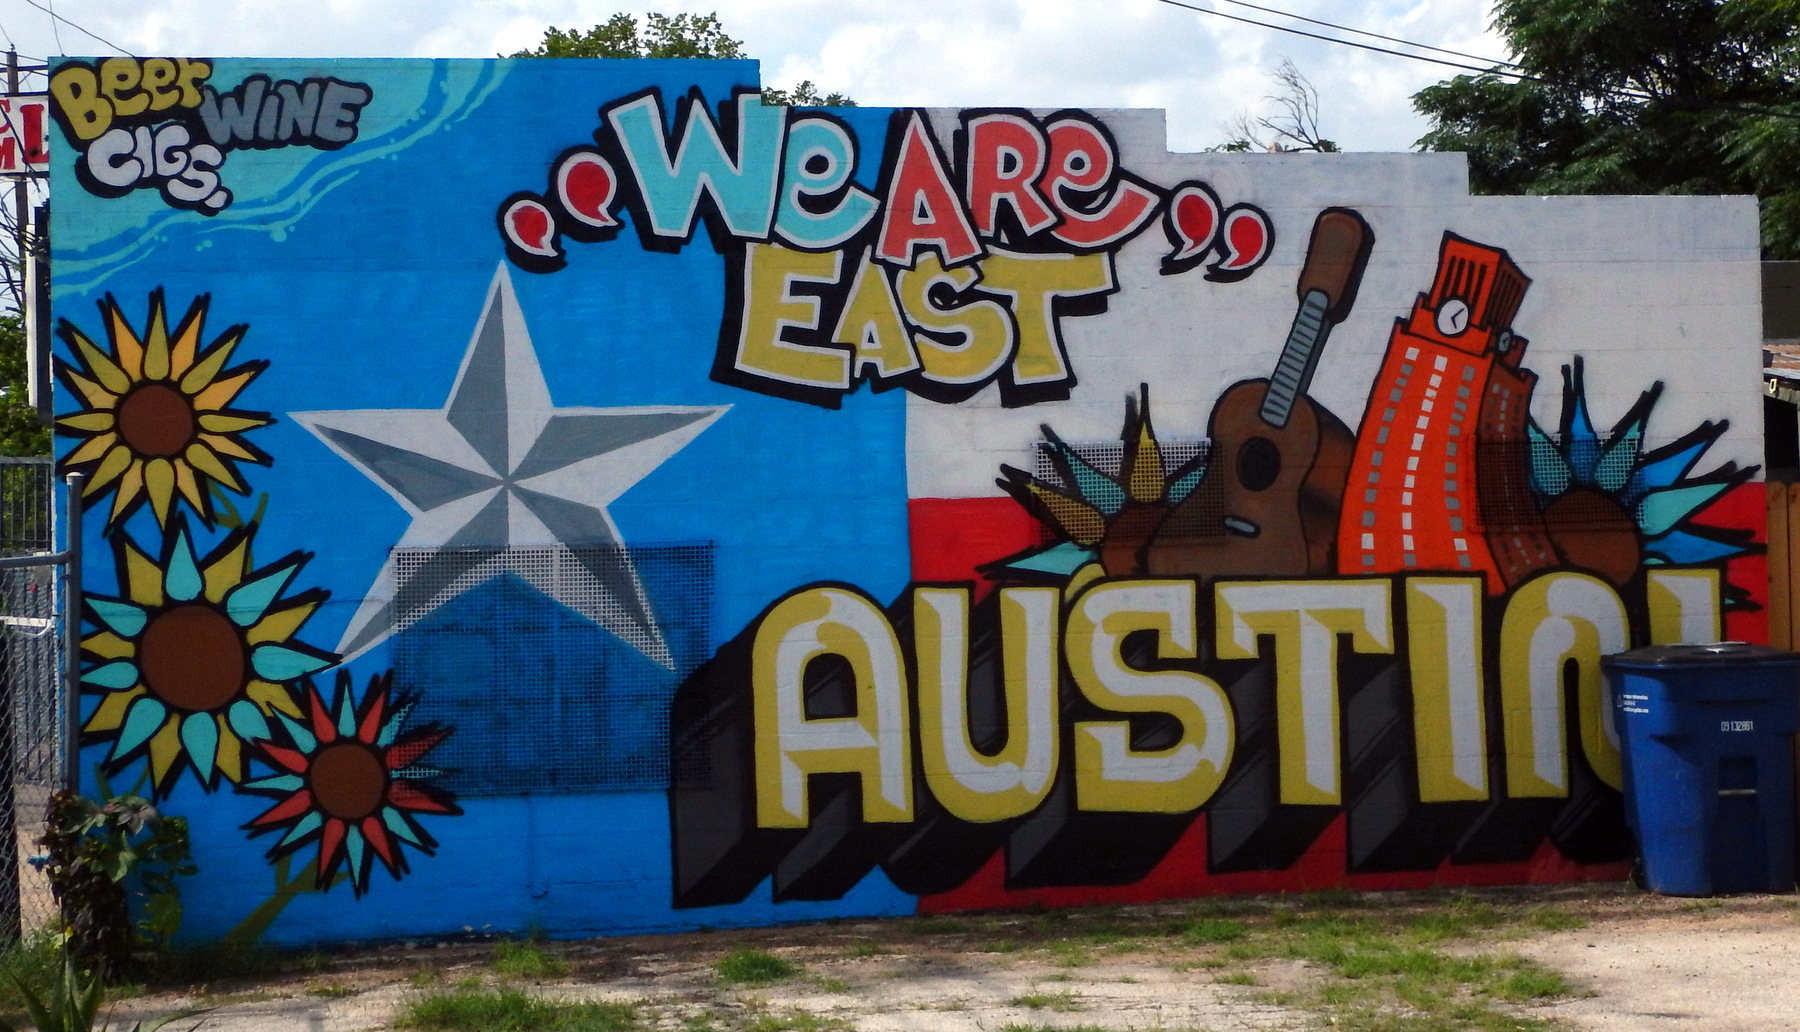 East Austin Street Art  A Yank Without A Chain